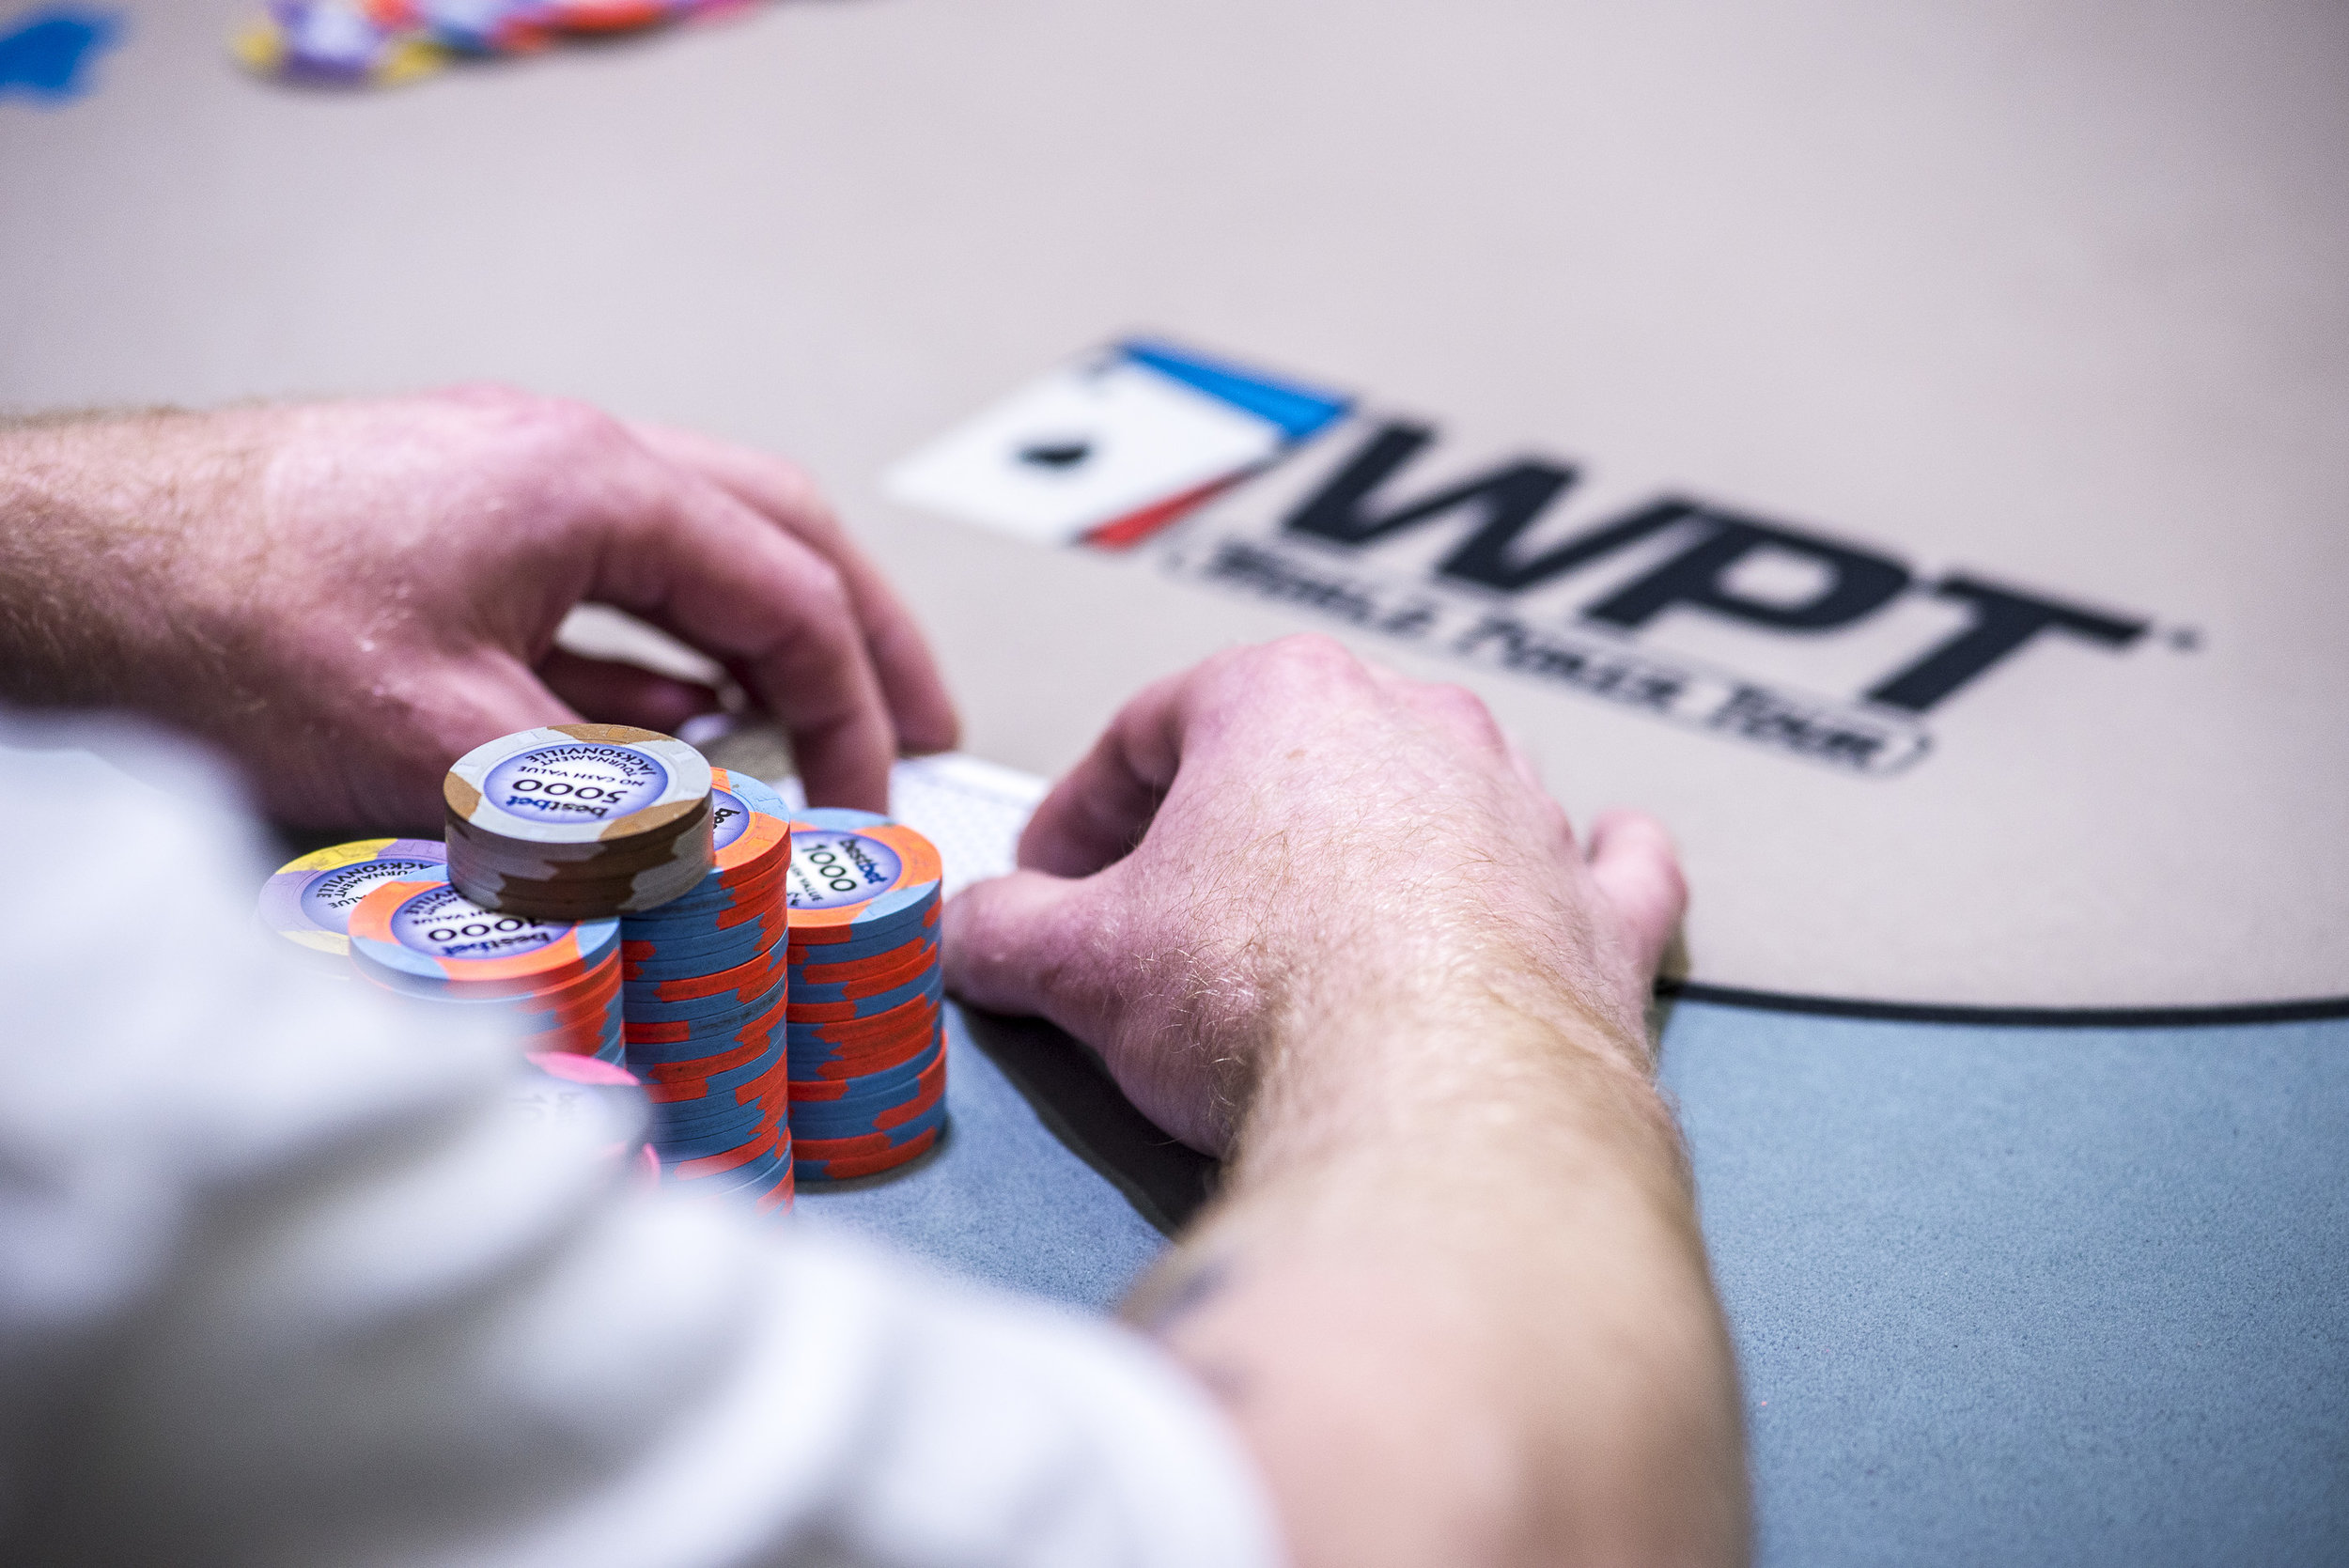 WPTDeepStacks_world poker tour_Amato_AA48002.jpg